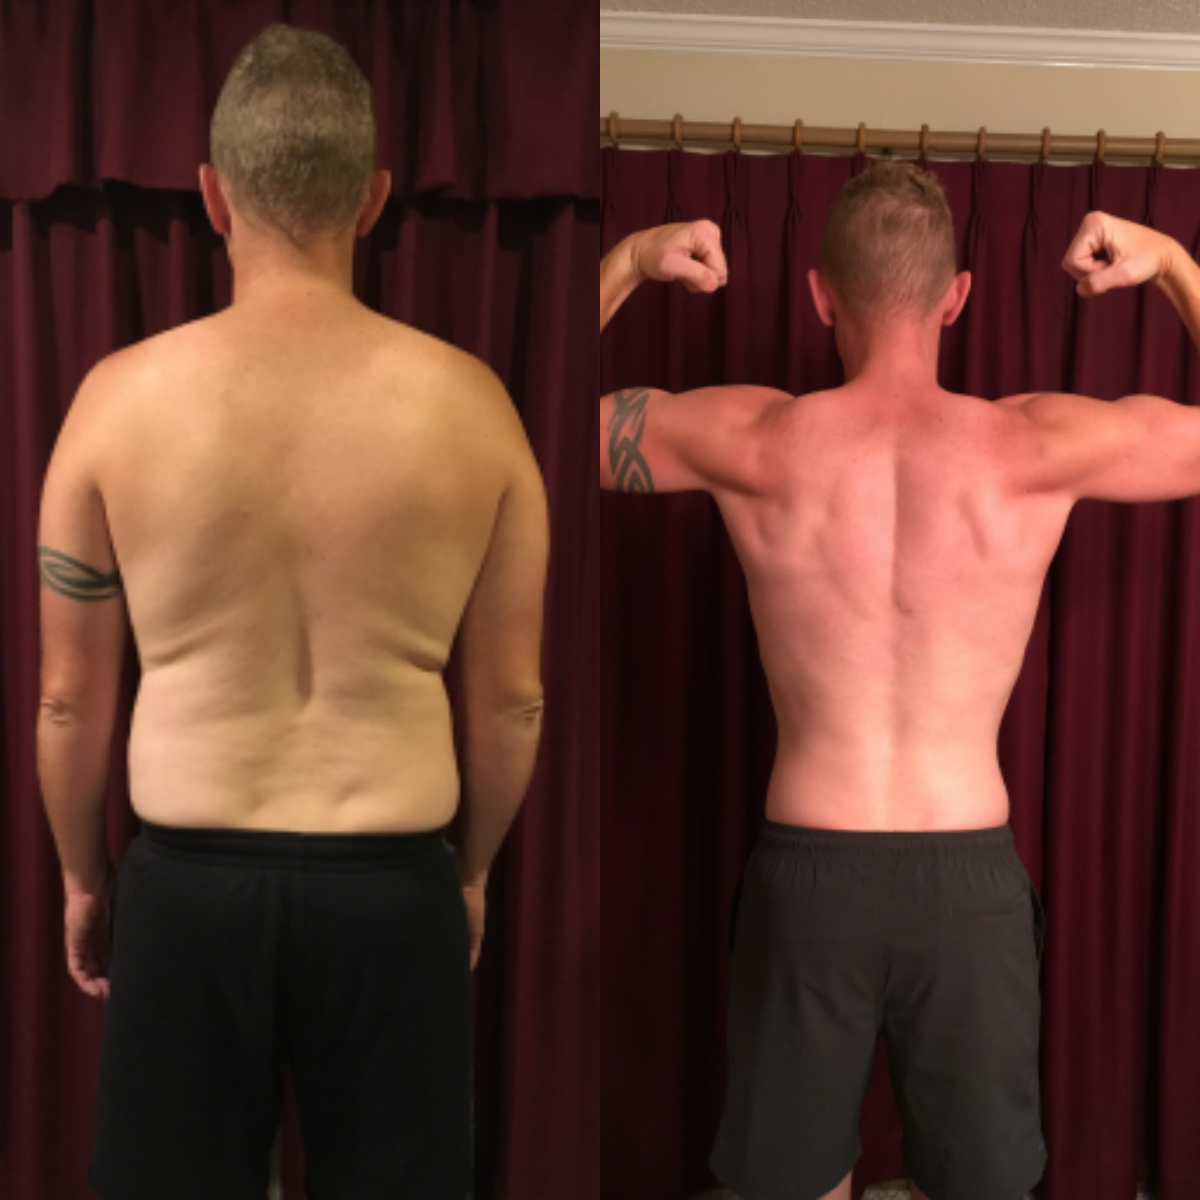 back double comparison 4-21-19.png